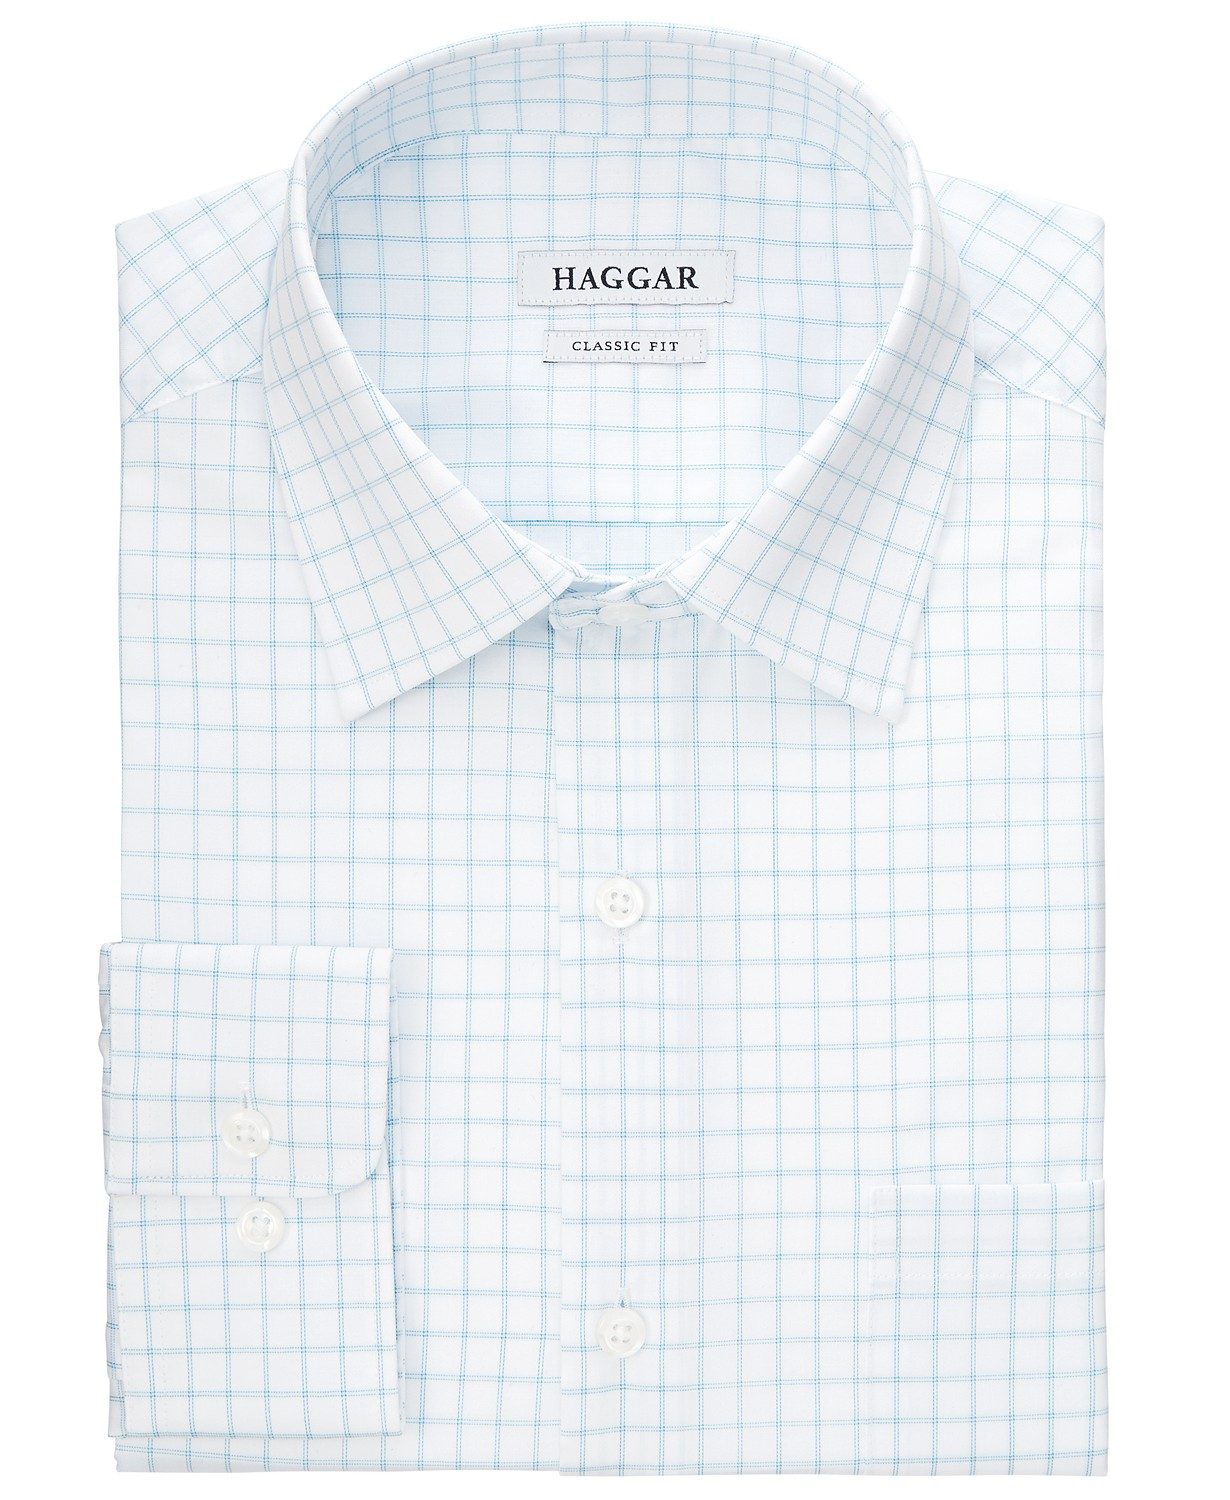 Men's Classic/Regular-Fit Comfort Stretch Check Dress Shirt  $10.06 (83% off)